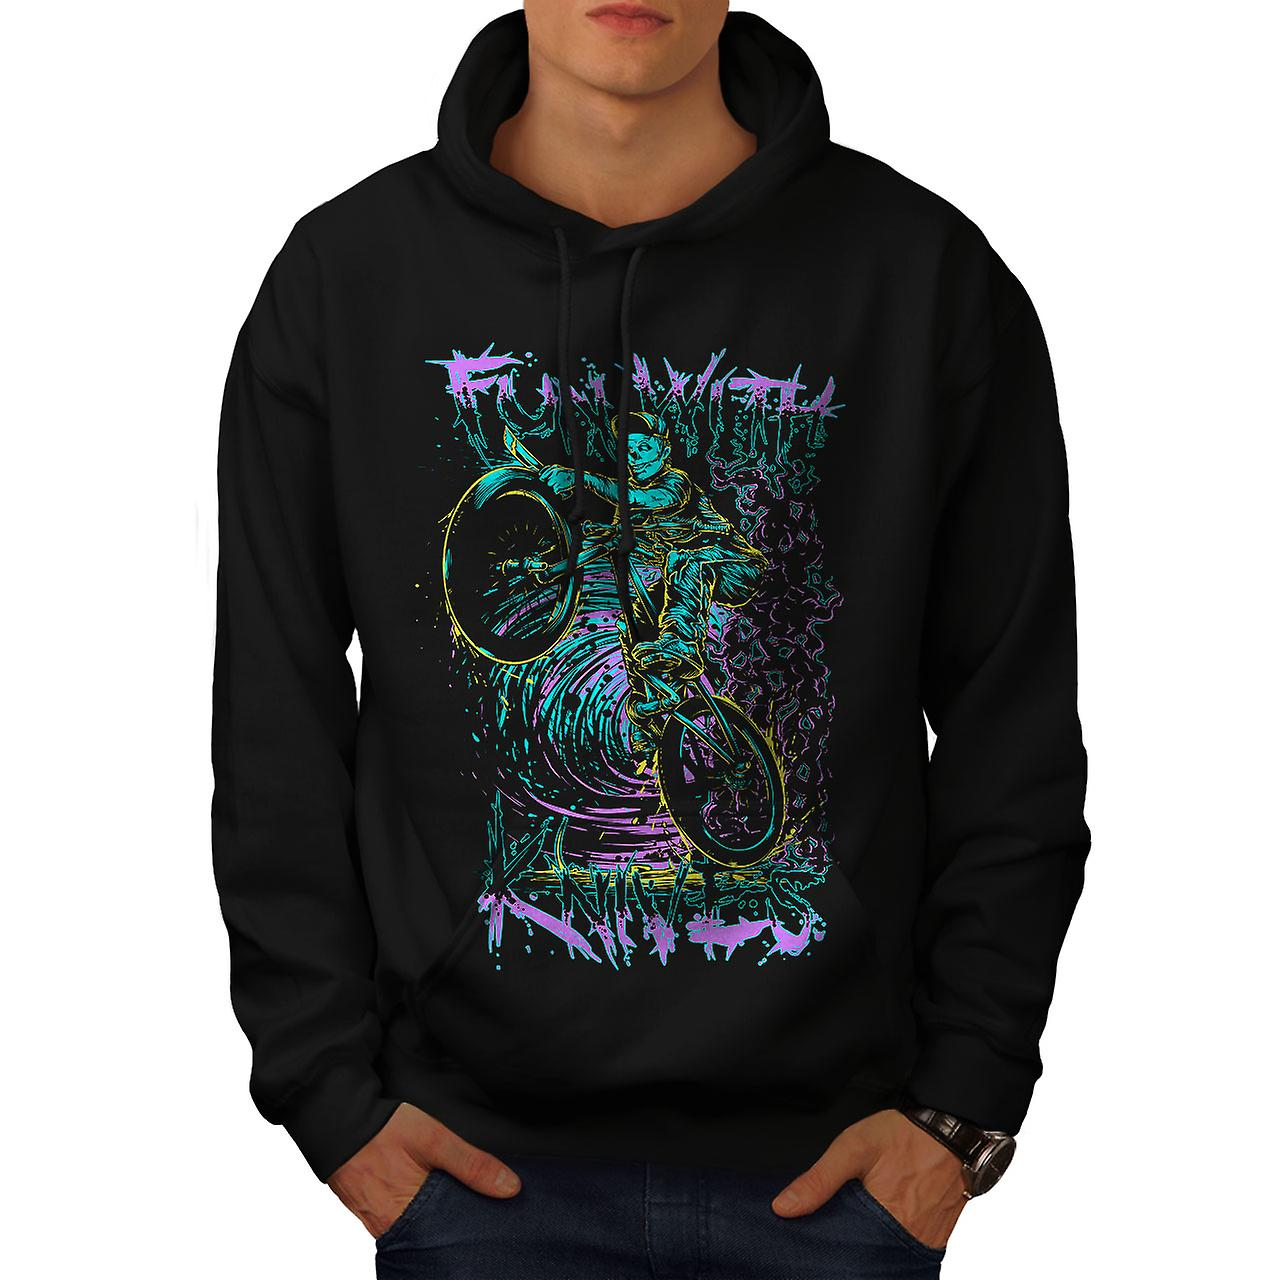 Fun Knife Biker Art Skull Men Black Hoodie | Wellcoda